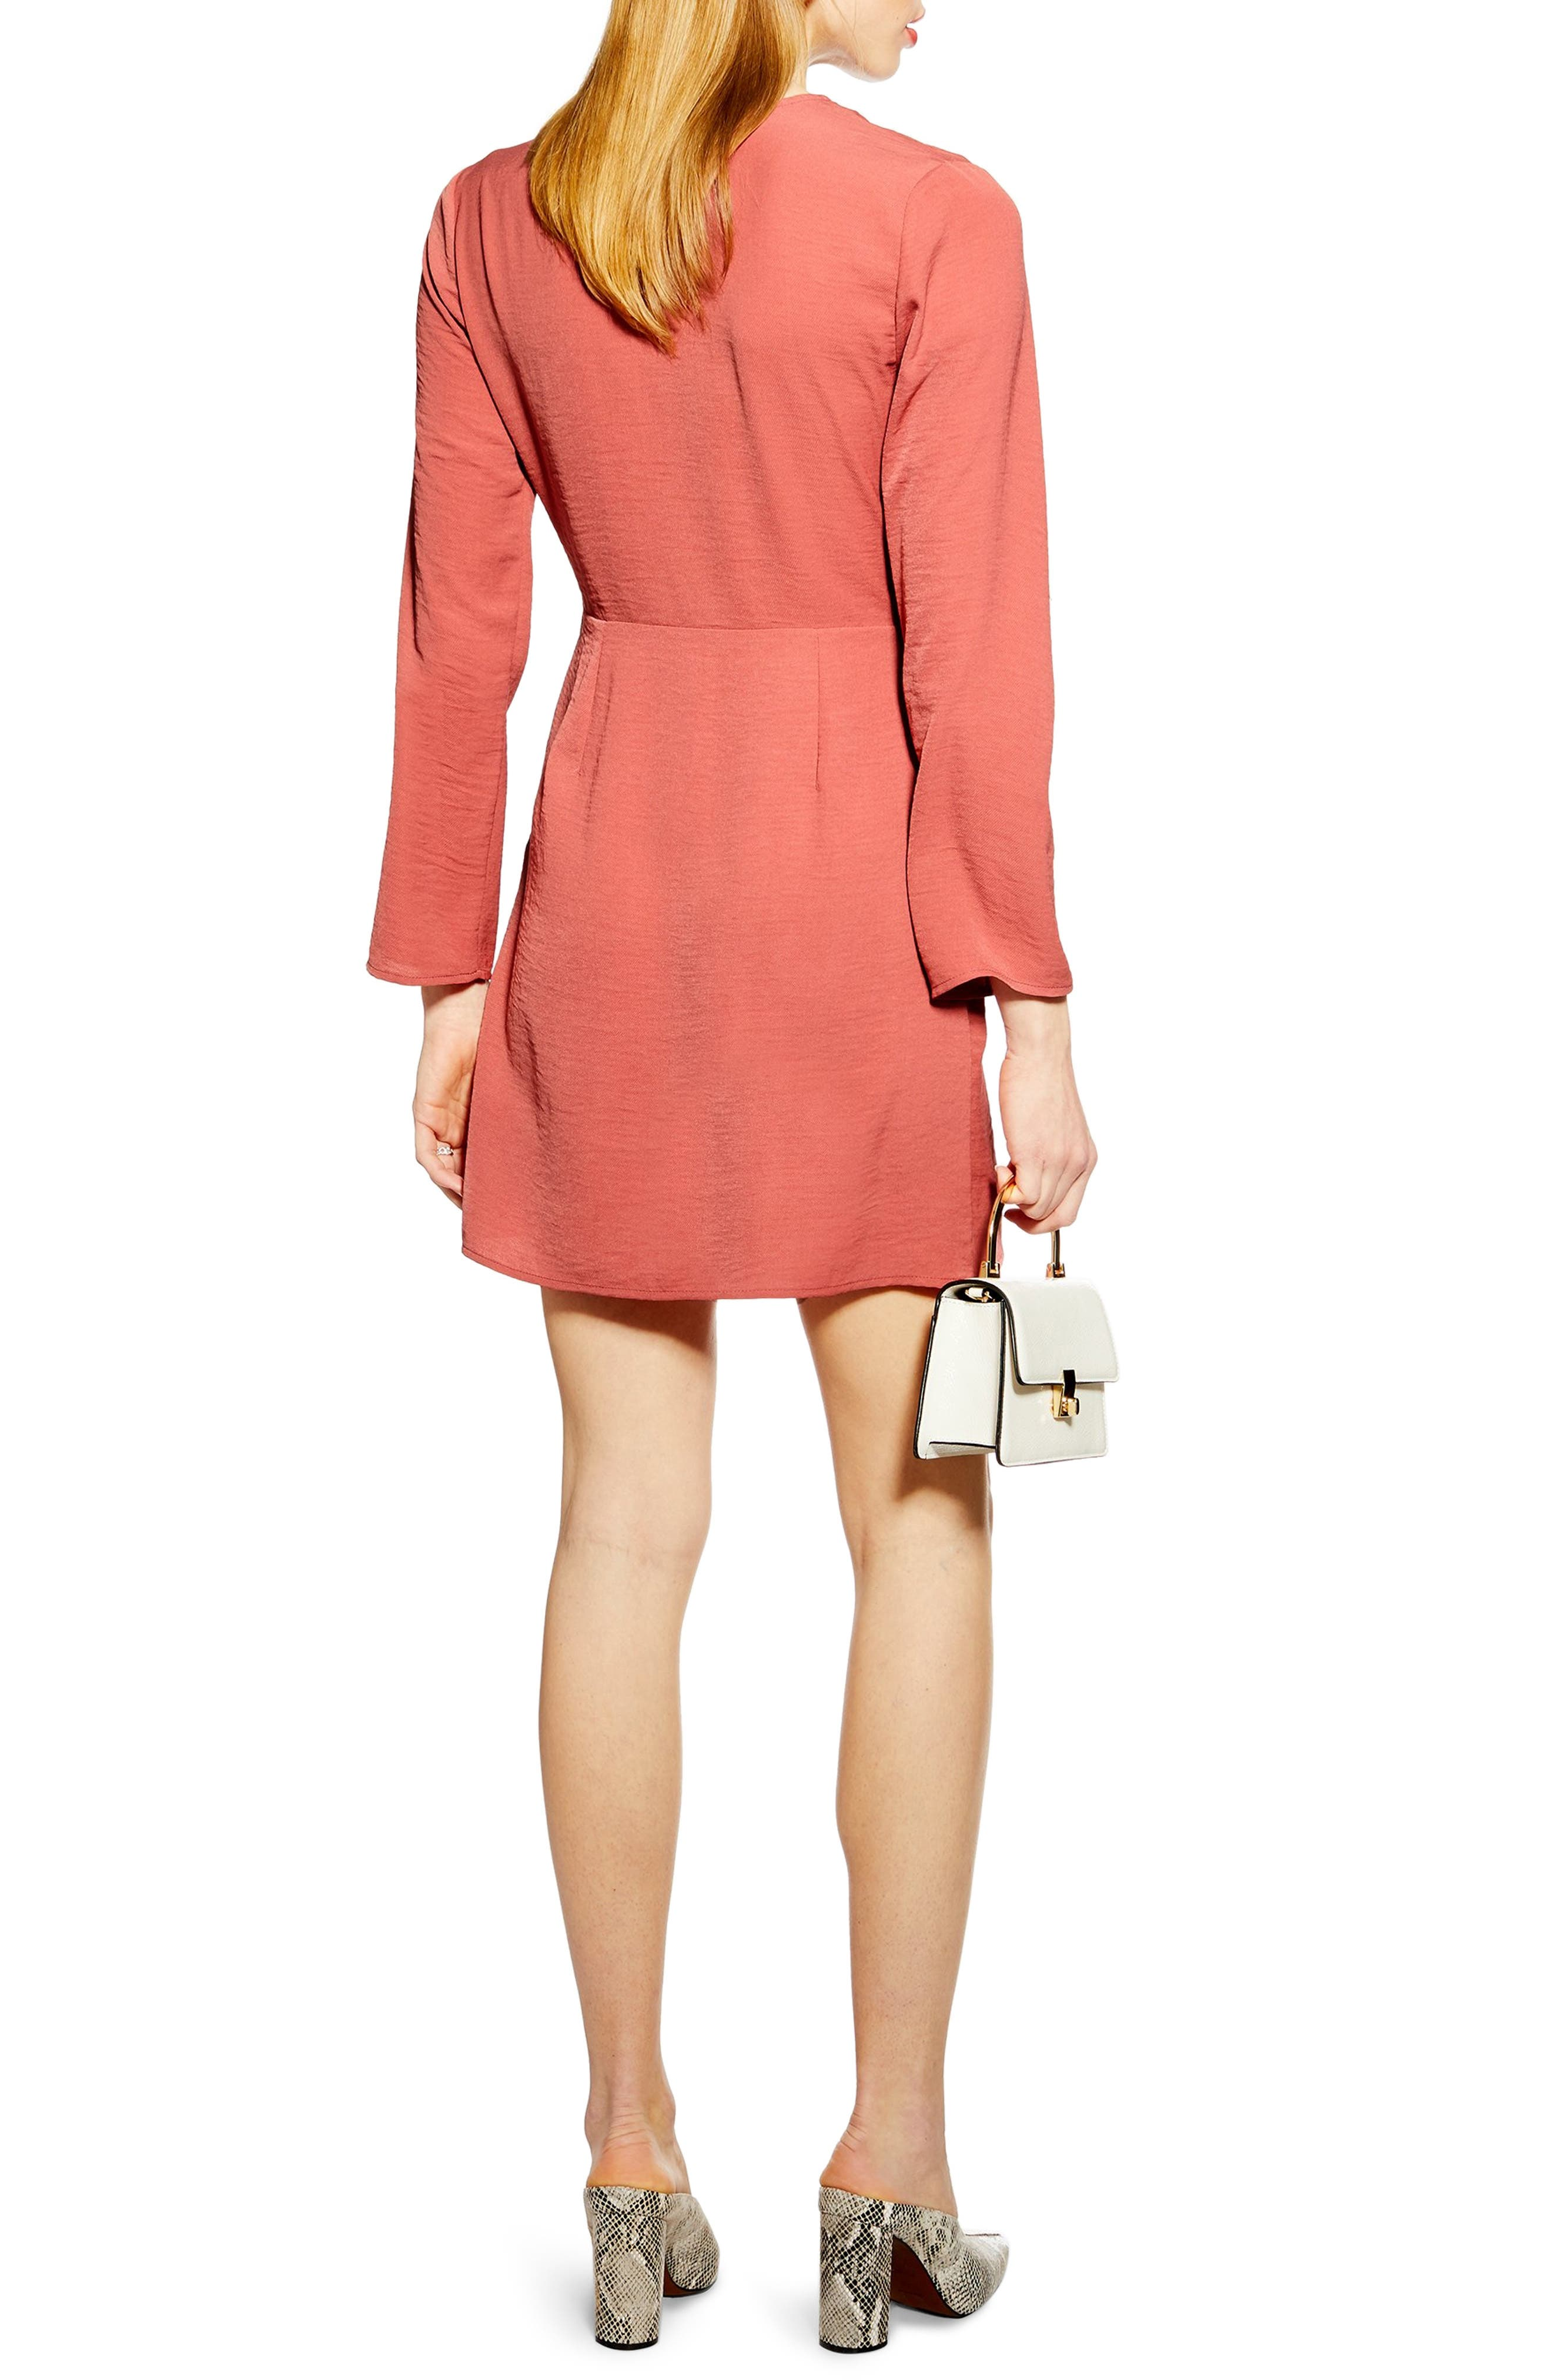 TOPSHOP, Tortoise Ring Minidress, Alternate thumbnail 2, color, DUSTY PINK